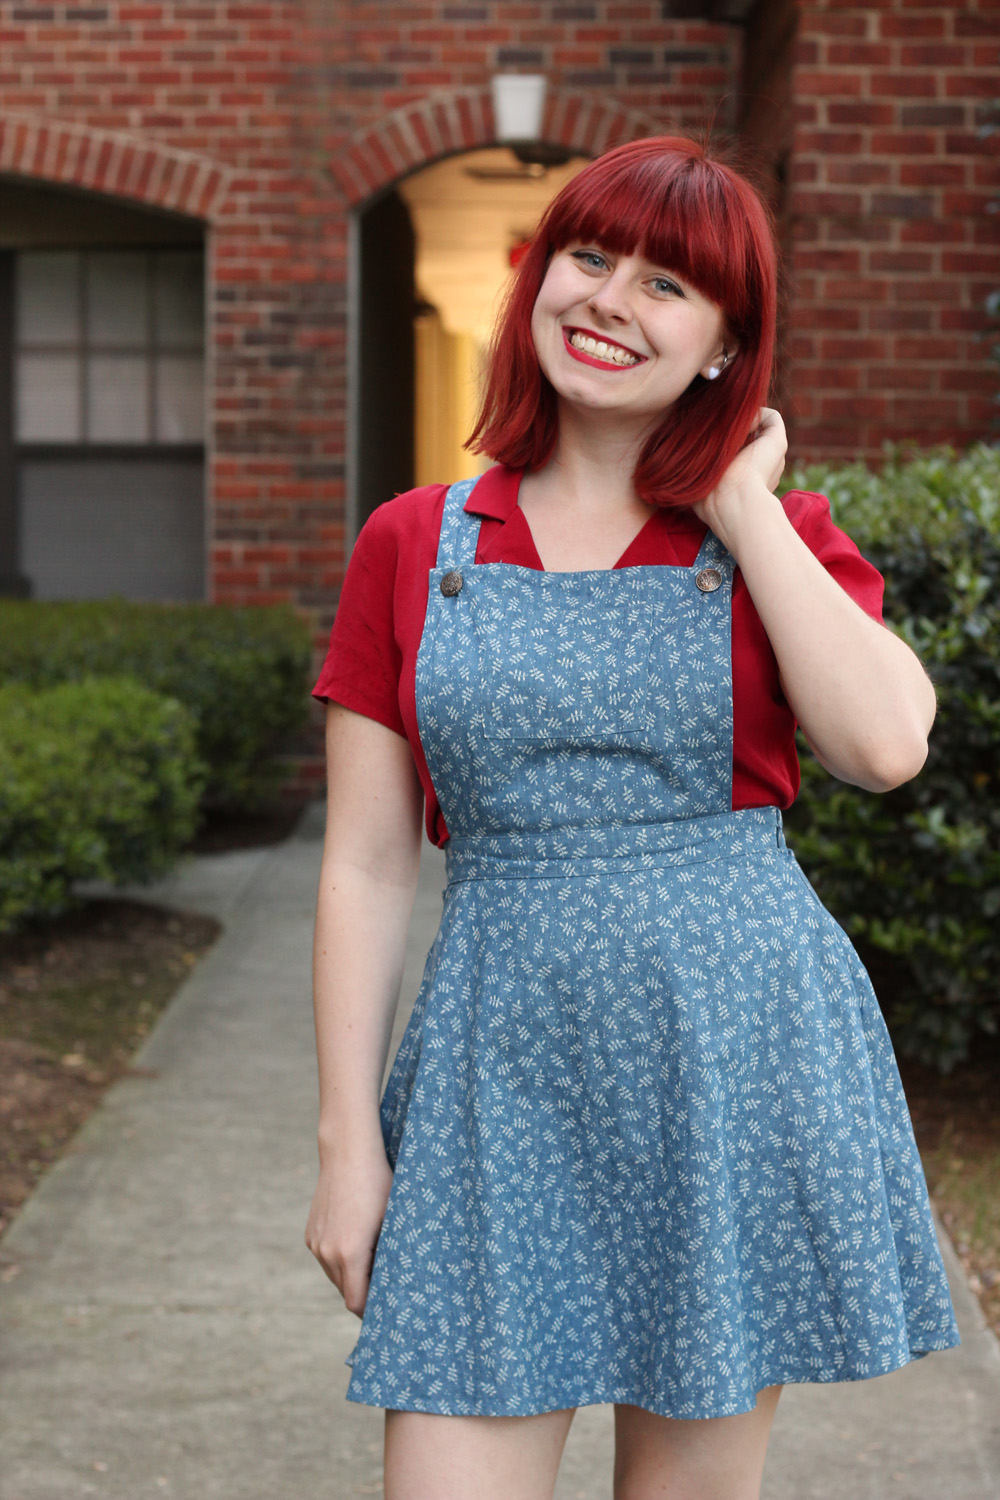 Red Button Down Top with a Leaf Patterned Denim Pinafore Dress